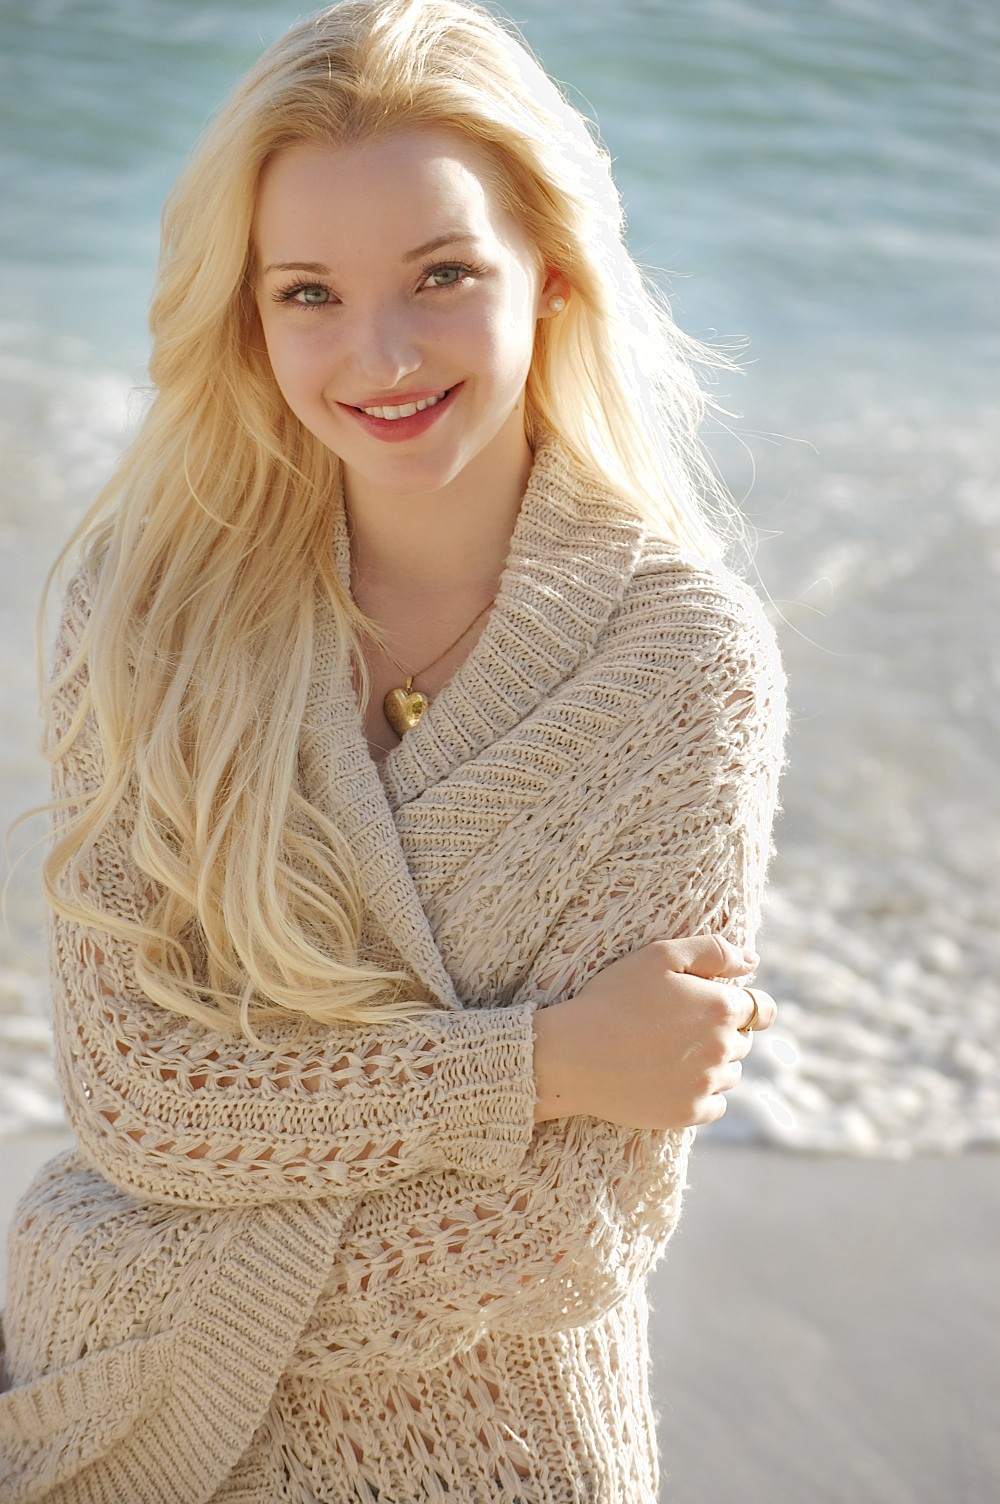 Dove Cameron in a cosy sweater - Dove Cameron Net Worth, Movies, Family, Boyfriend, Pictures and Wallpapers